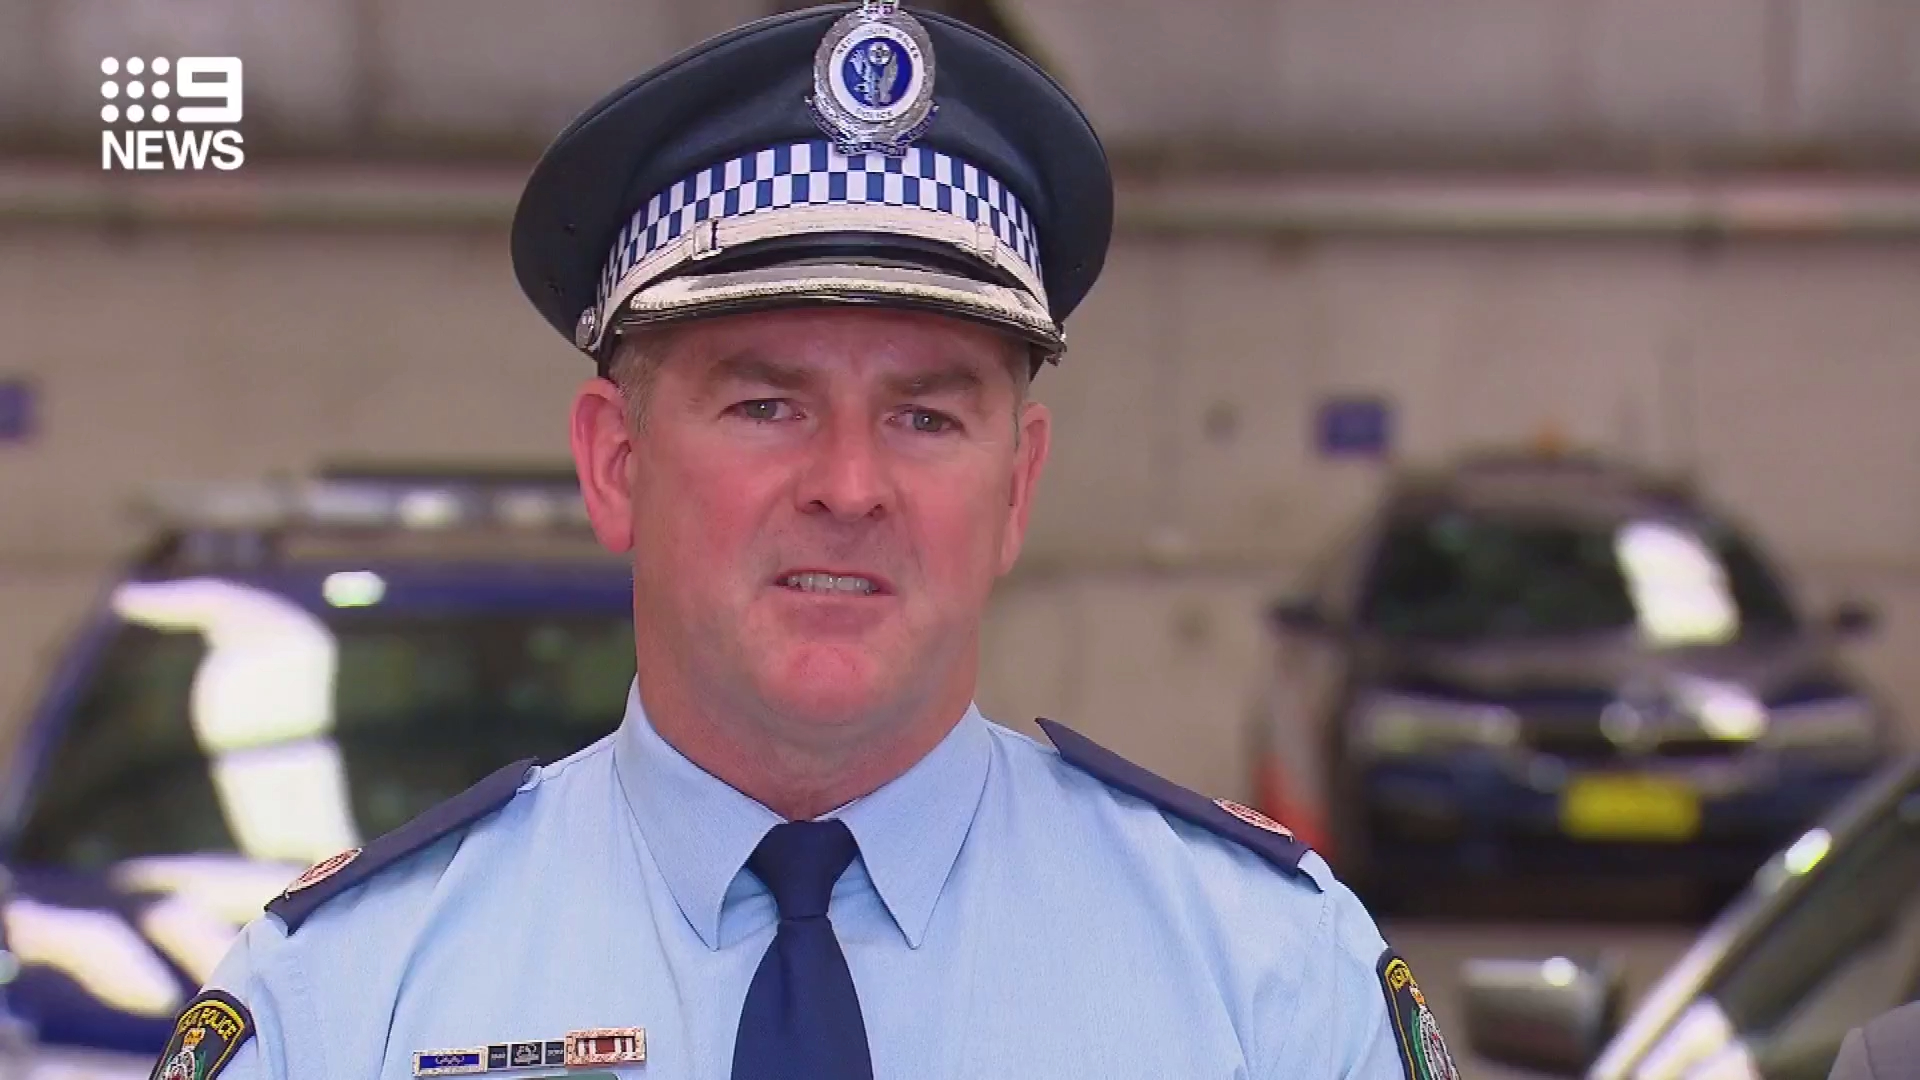 NSW drivers warned of double demerits over long weekend